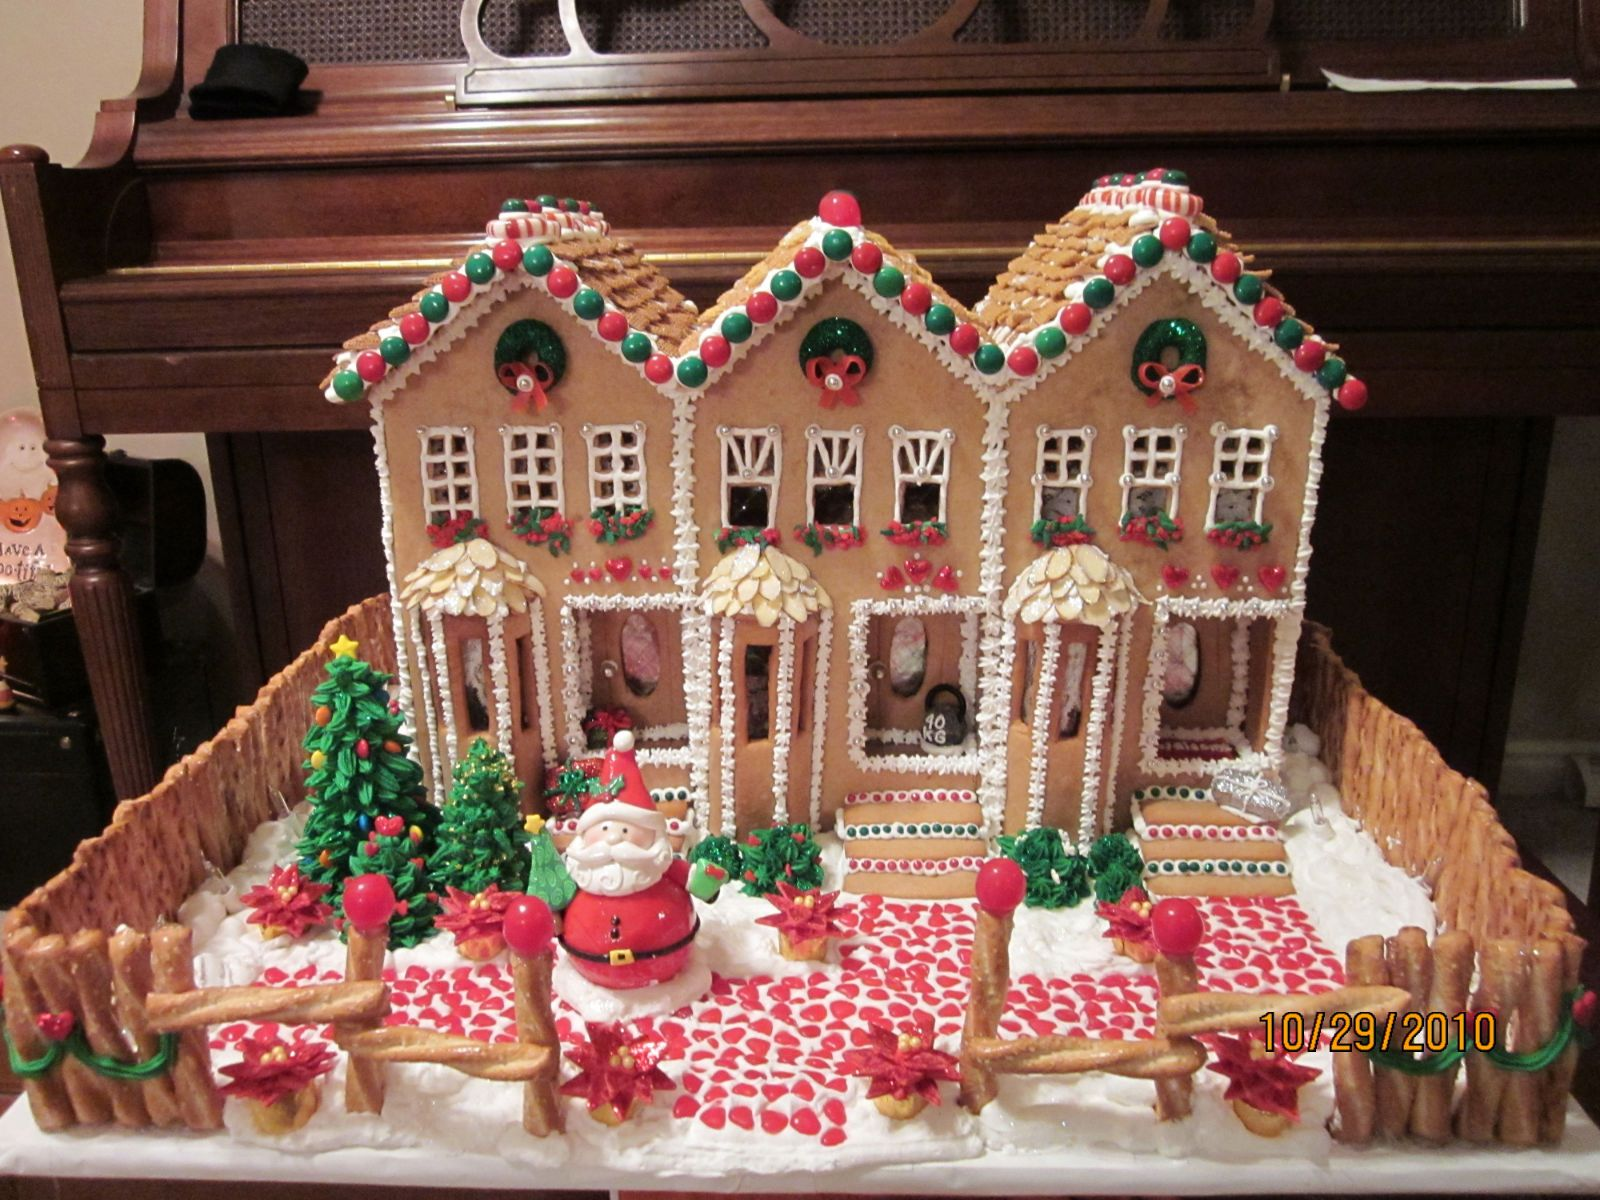 gingerbread house This kinda looks like my house  right  I so want moreover  besides 51 best Gingerbread images on Pinterest   Gingerbread houses furthermore 25  unique Candy house ideas on Pinterest   Gingerbread houses together with 60 best  BigLots Christmas Like Crazy Sweepstakes images on likewise 25  unique Gingerbread house template printable ideas on Pinterest moreover  as well 479 best Gingerbread Houses images on Pinterest   Christmas besides 41 best BIg Lots Christmas Stuffers images on Pinterest   Bath besides Christmas Ornaments   Tree Decorations   Big Lots also 56 Amazing Gingerbread Houses   Pictures of Gingerbread House. on big lots christmas gingerbread house